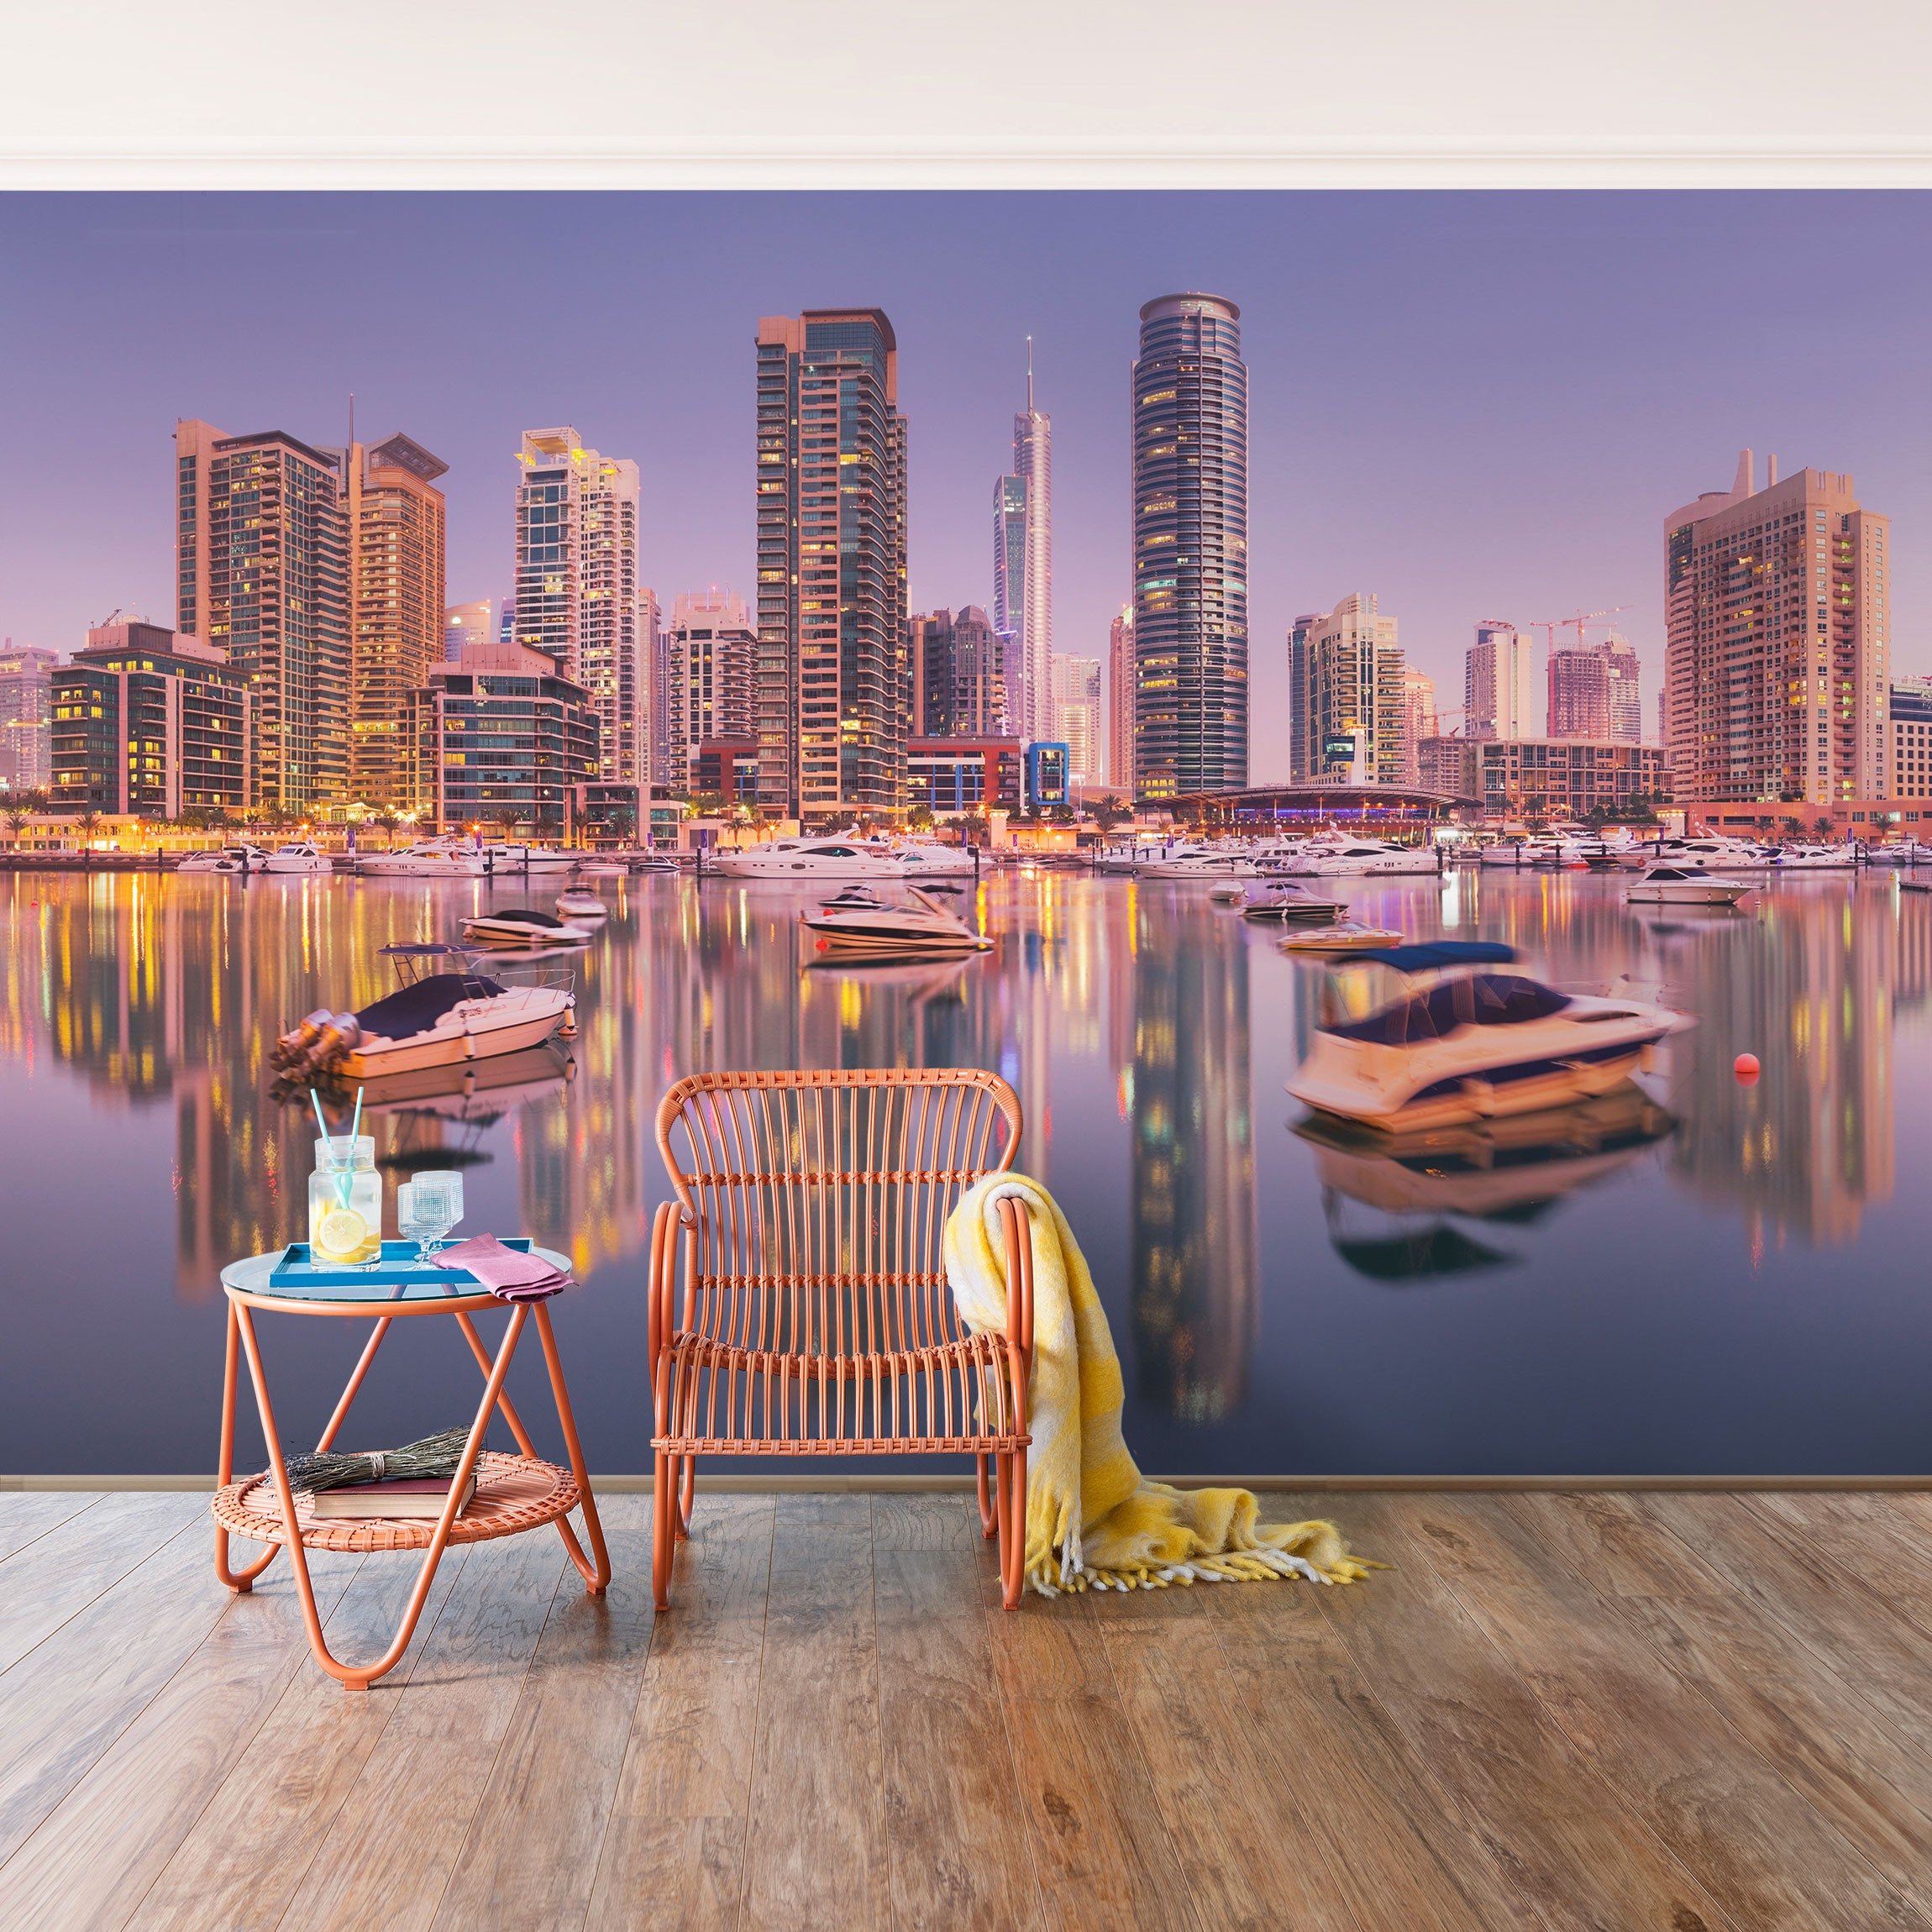 selbstklebende tapete fototapete dubai skyline und marina. Black Bedroom Furniture Sets. Home Design Ideas